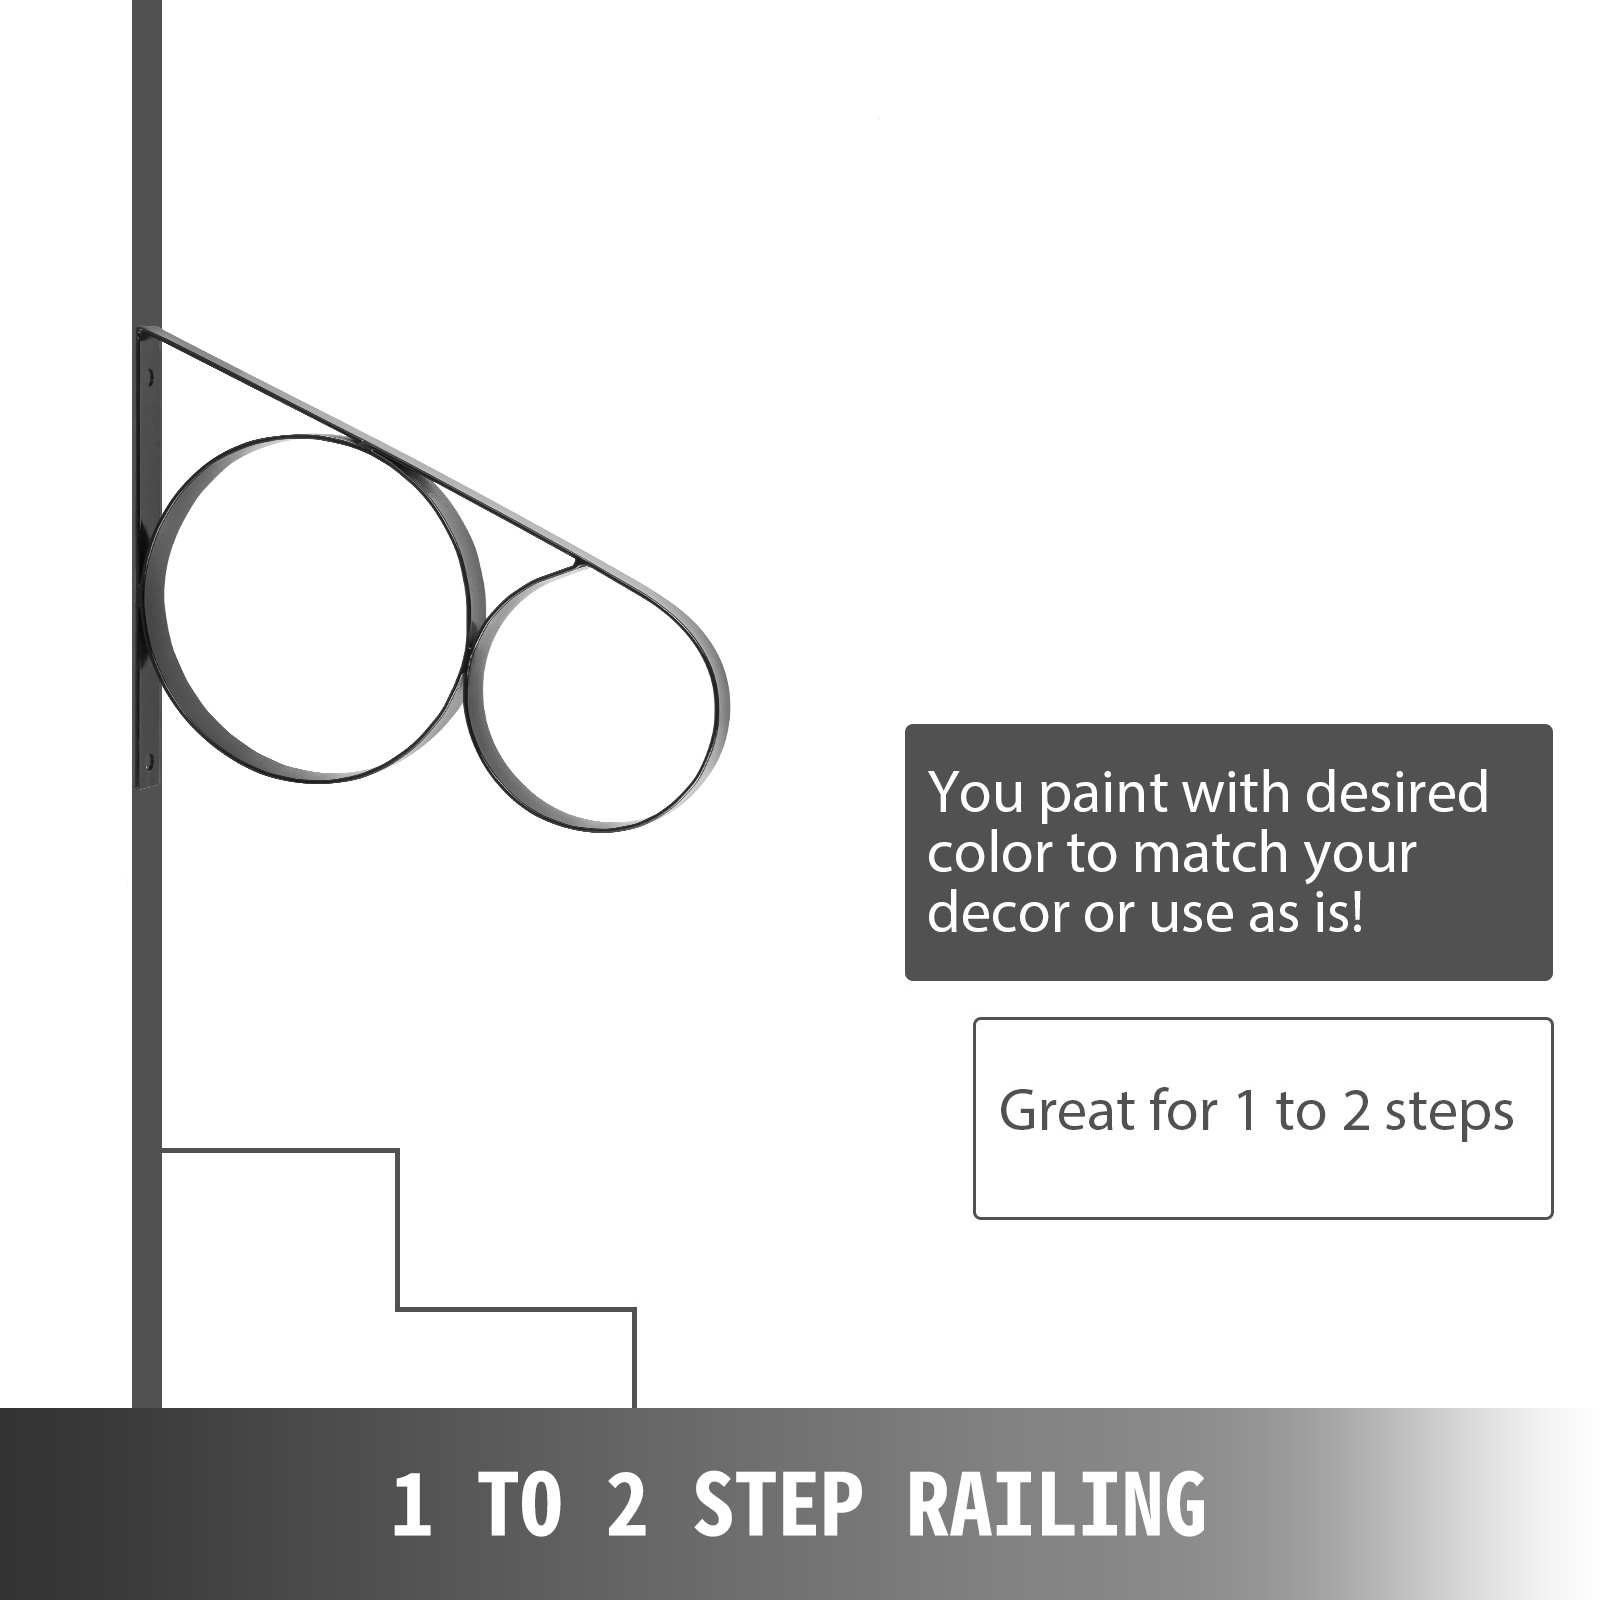 Handrails-for-Outdoor-Step-Wrought-Iron-Handrail-20-034-Length-Porch-Deck-Railing thumbnail 27